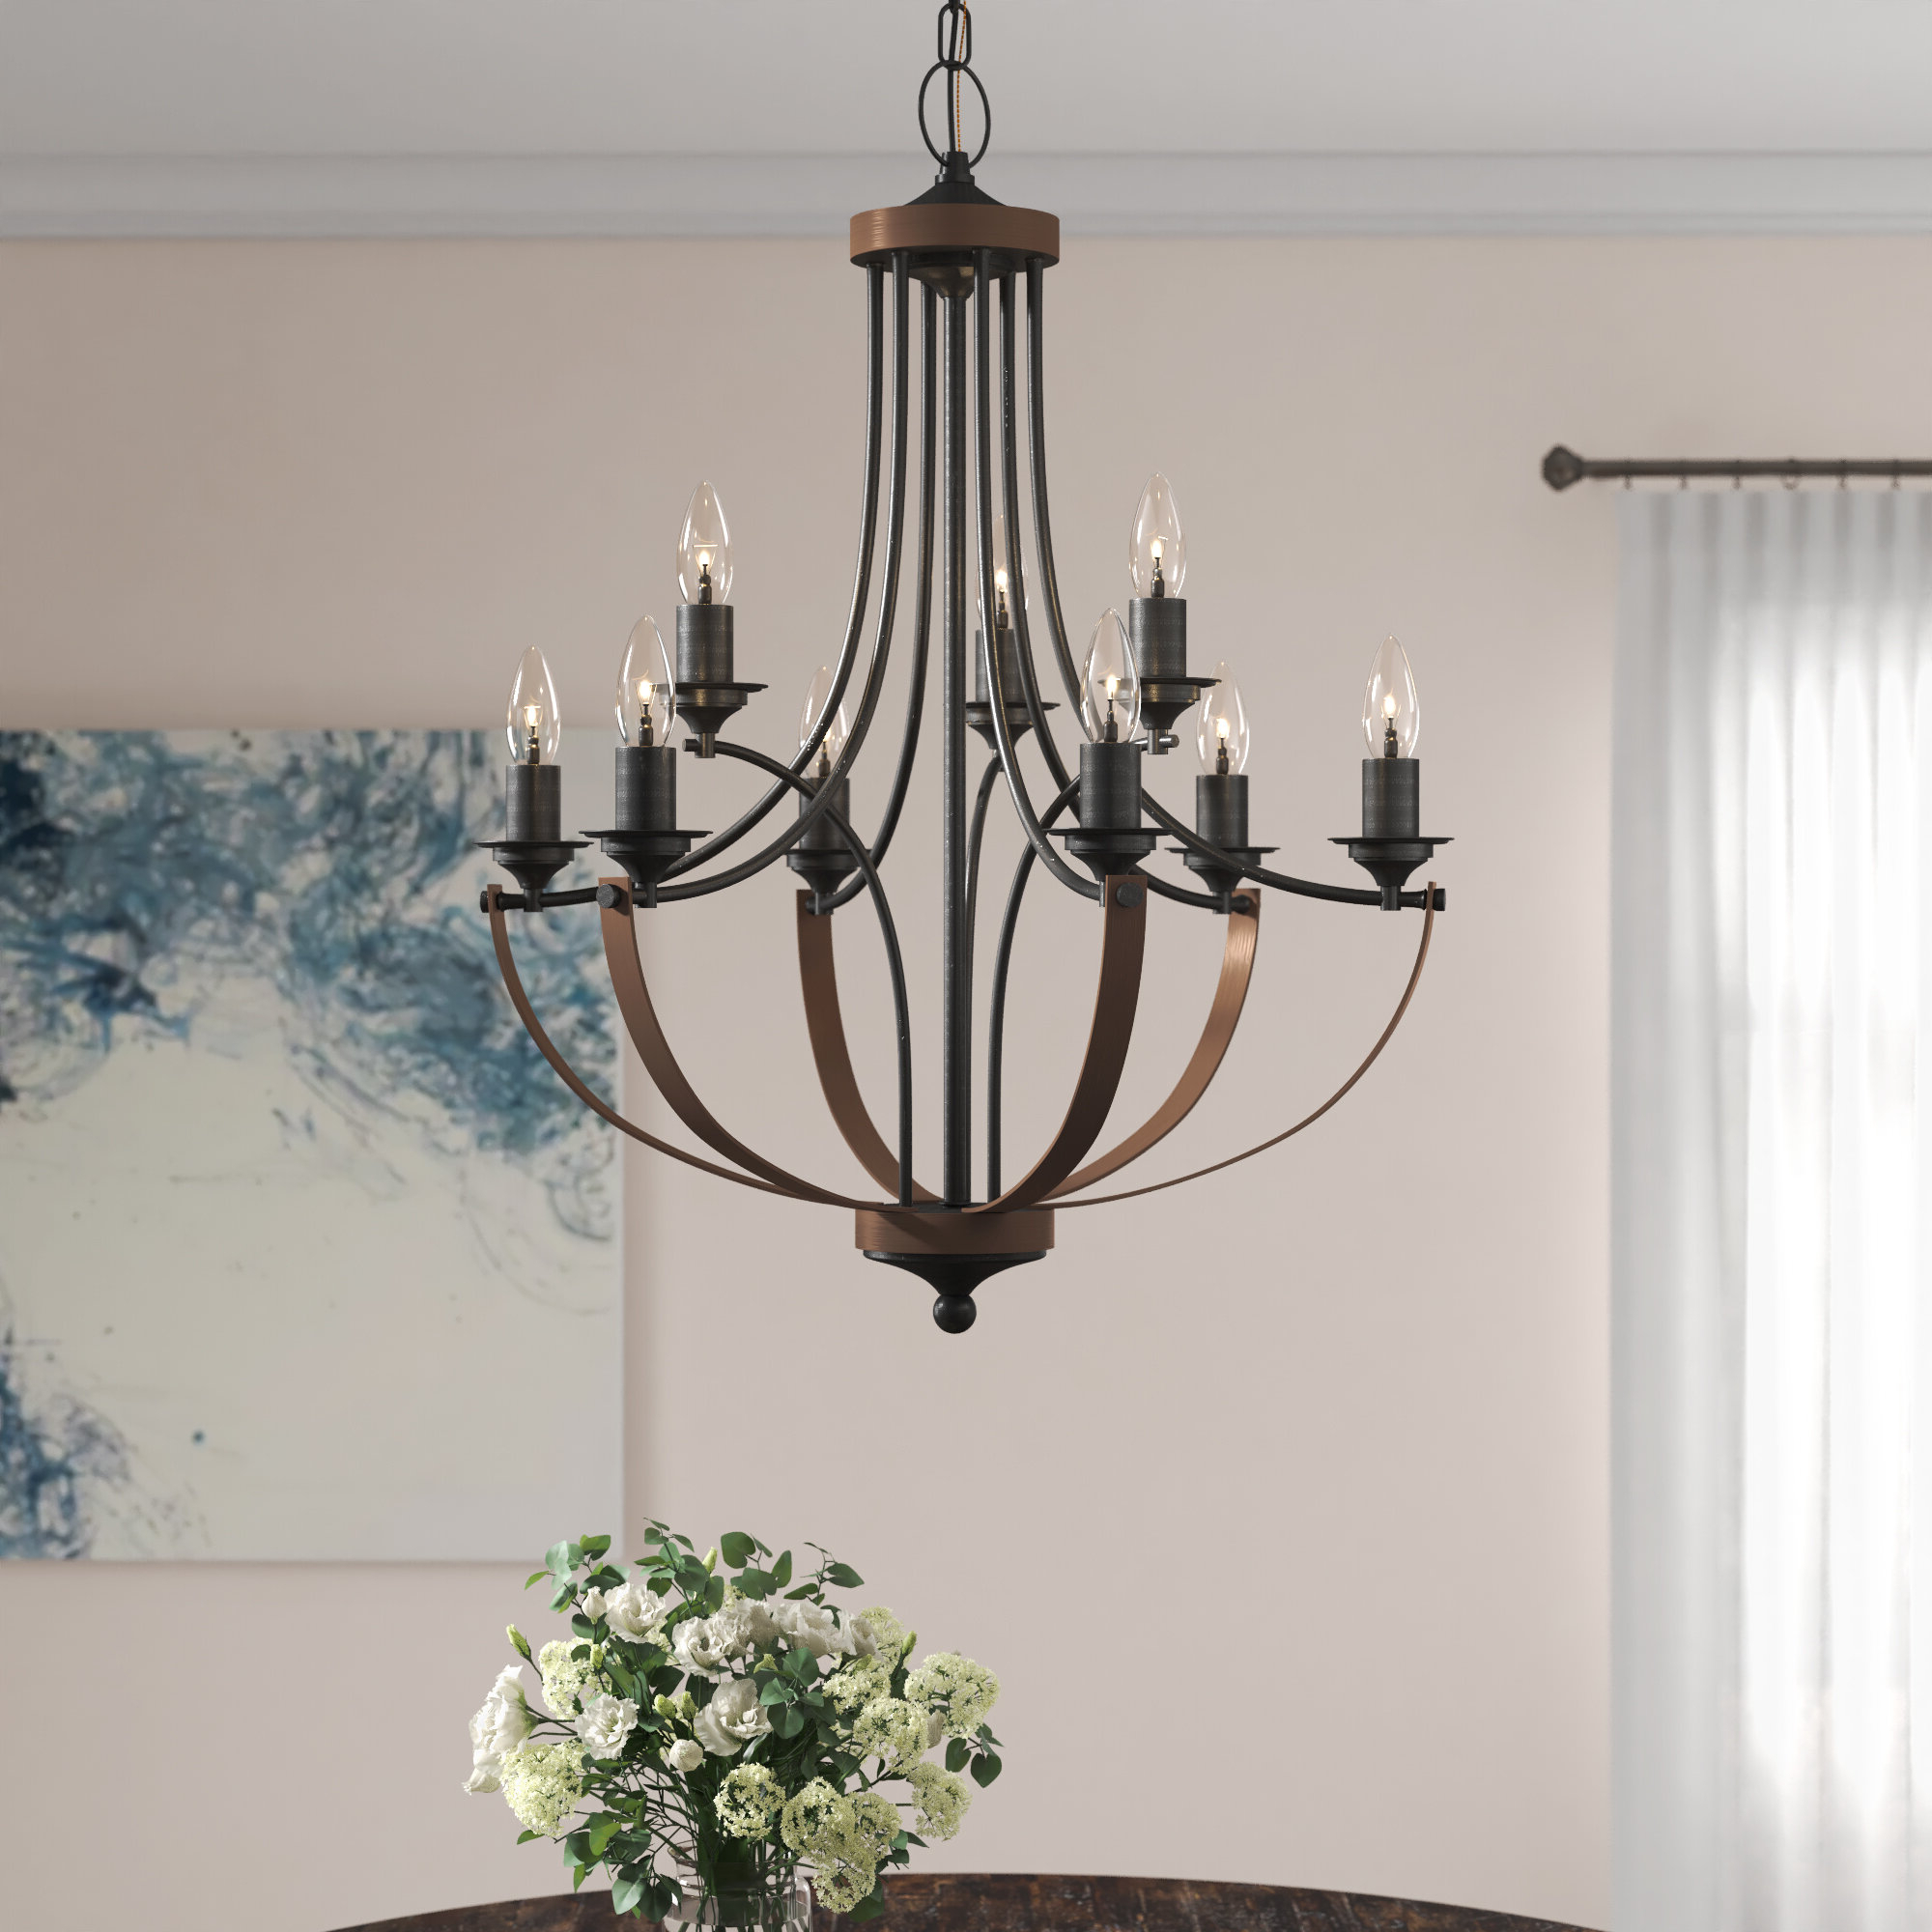 Camilla 9 Light Candle Style Chandelier In Well Known Giverny 9 Light Candle Style Chandeliers (View 4 of 25)